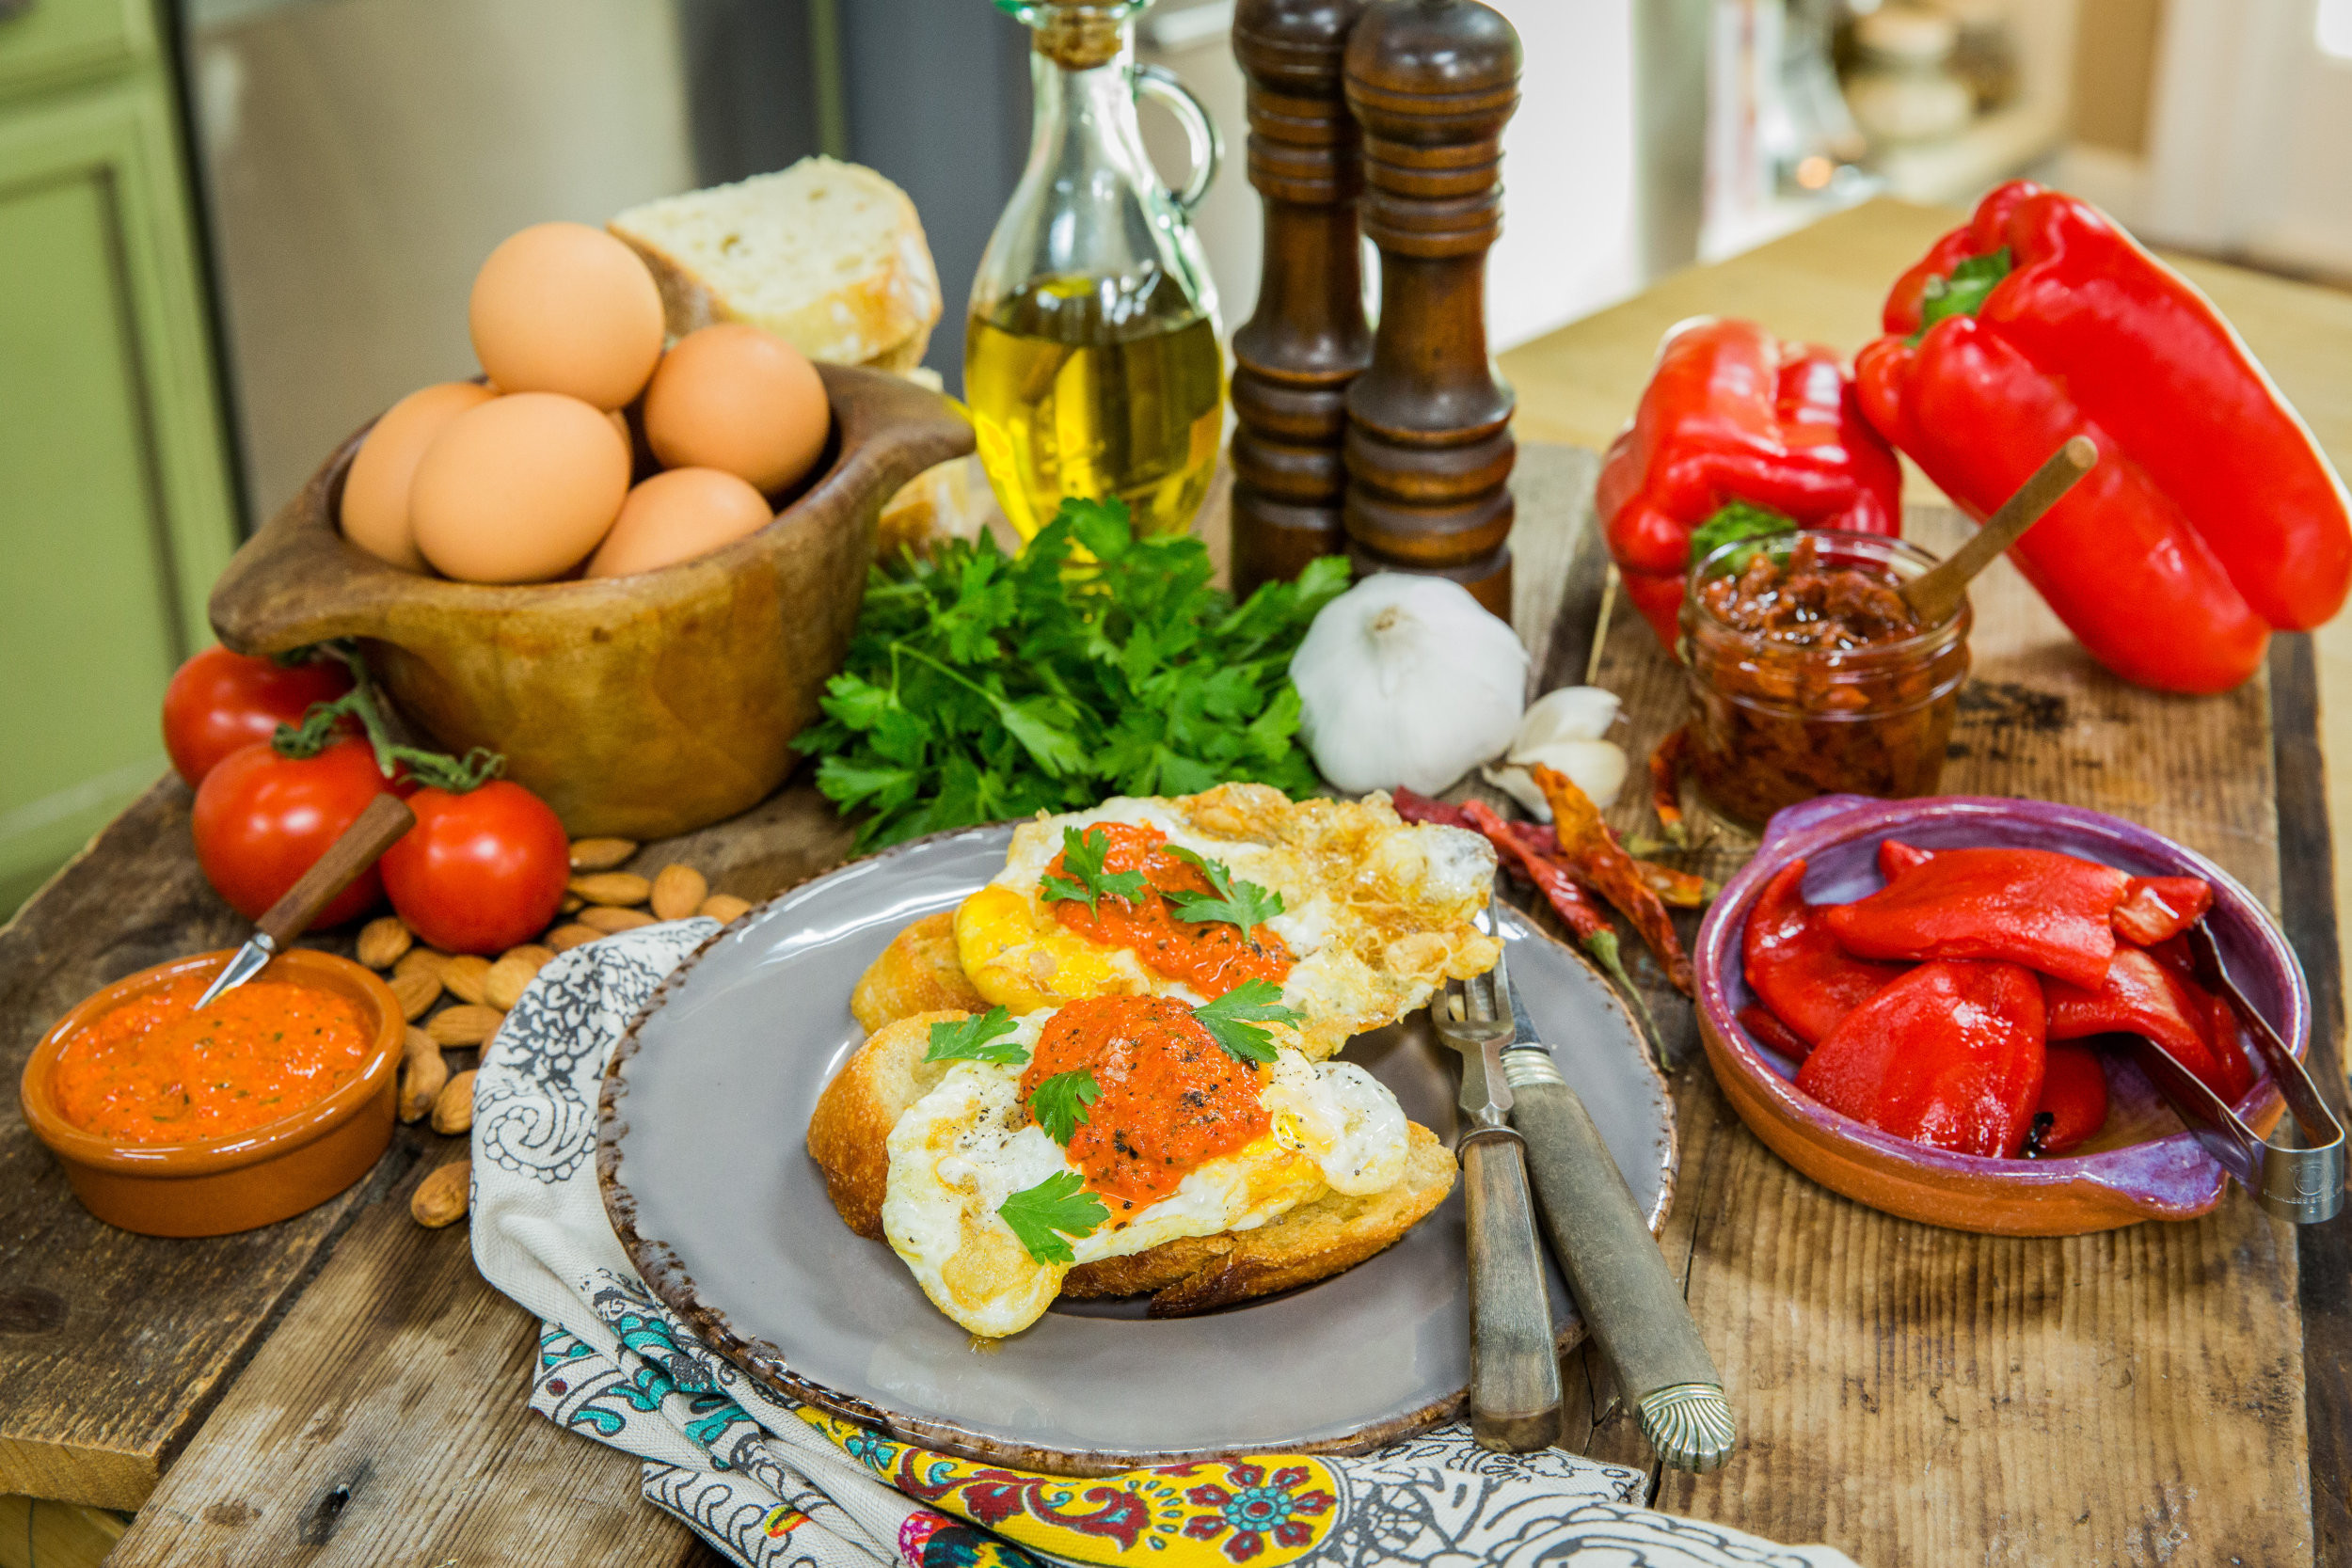 Best ideas about Pantry In Spanish . Save or Pin Recipe Home & Family Olive Oil Fried Eggs with Spanish Now.